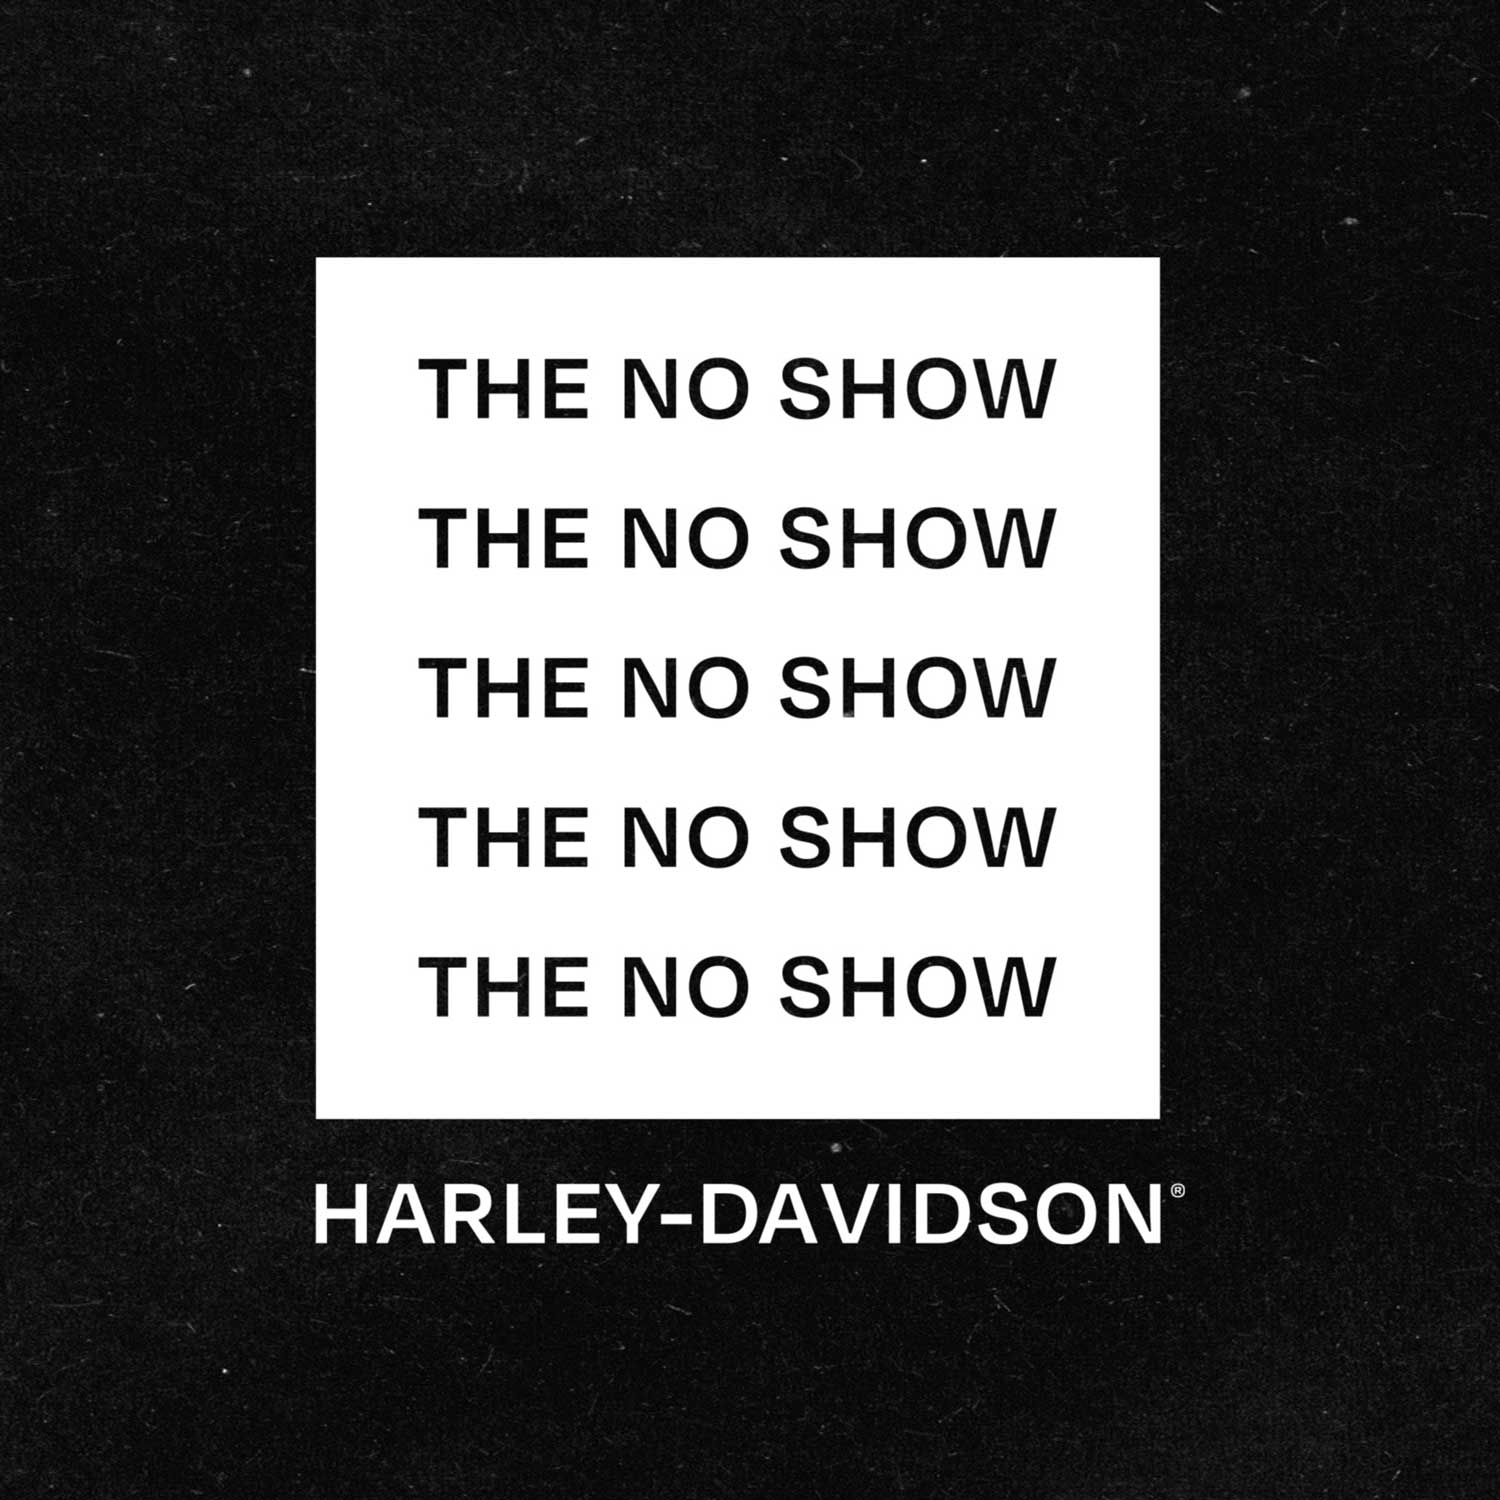 """HARLEY-DAVIDSON HOST """"THE NO SHOW"""" TO SPOTLIGHT CUSTOM MOTORCYCLE SHOWS UND BUILDERS"""